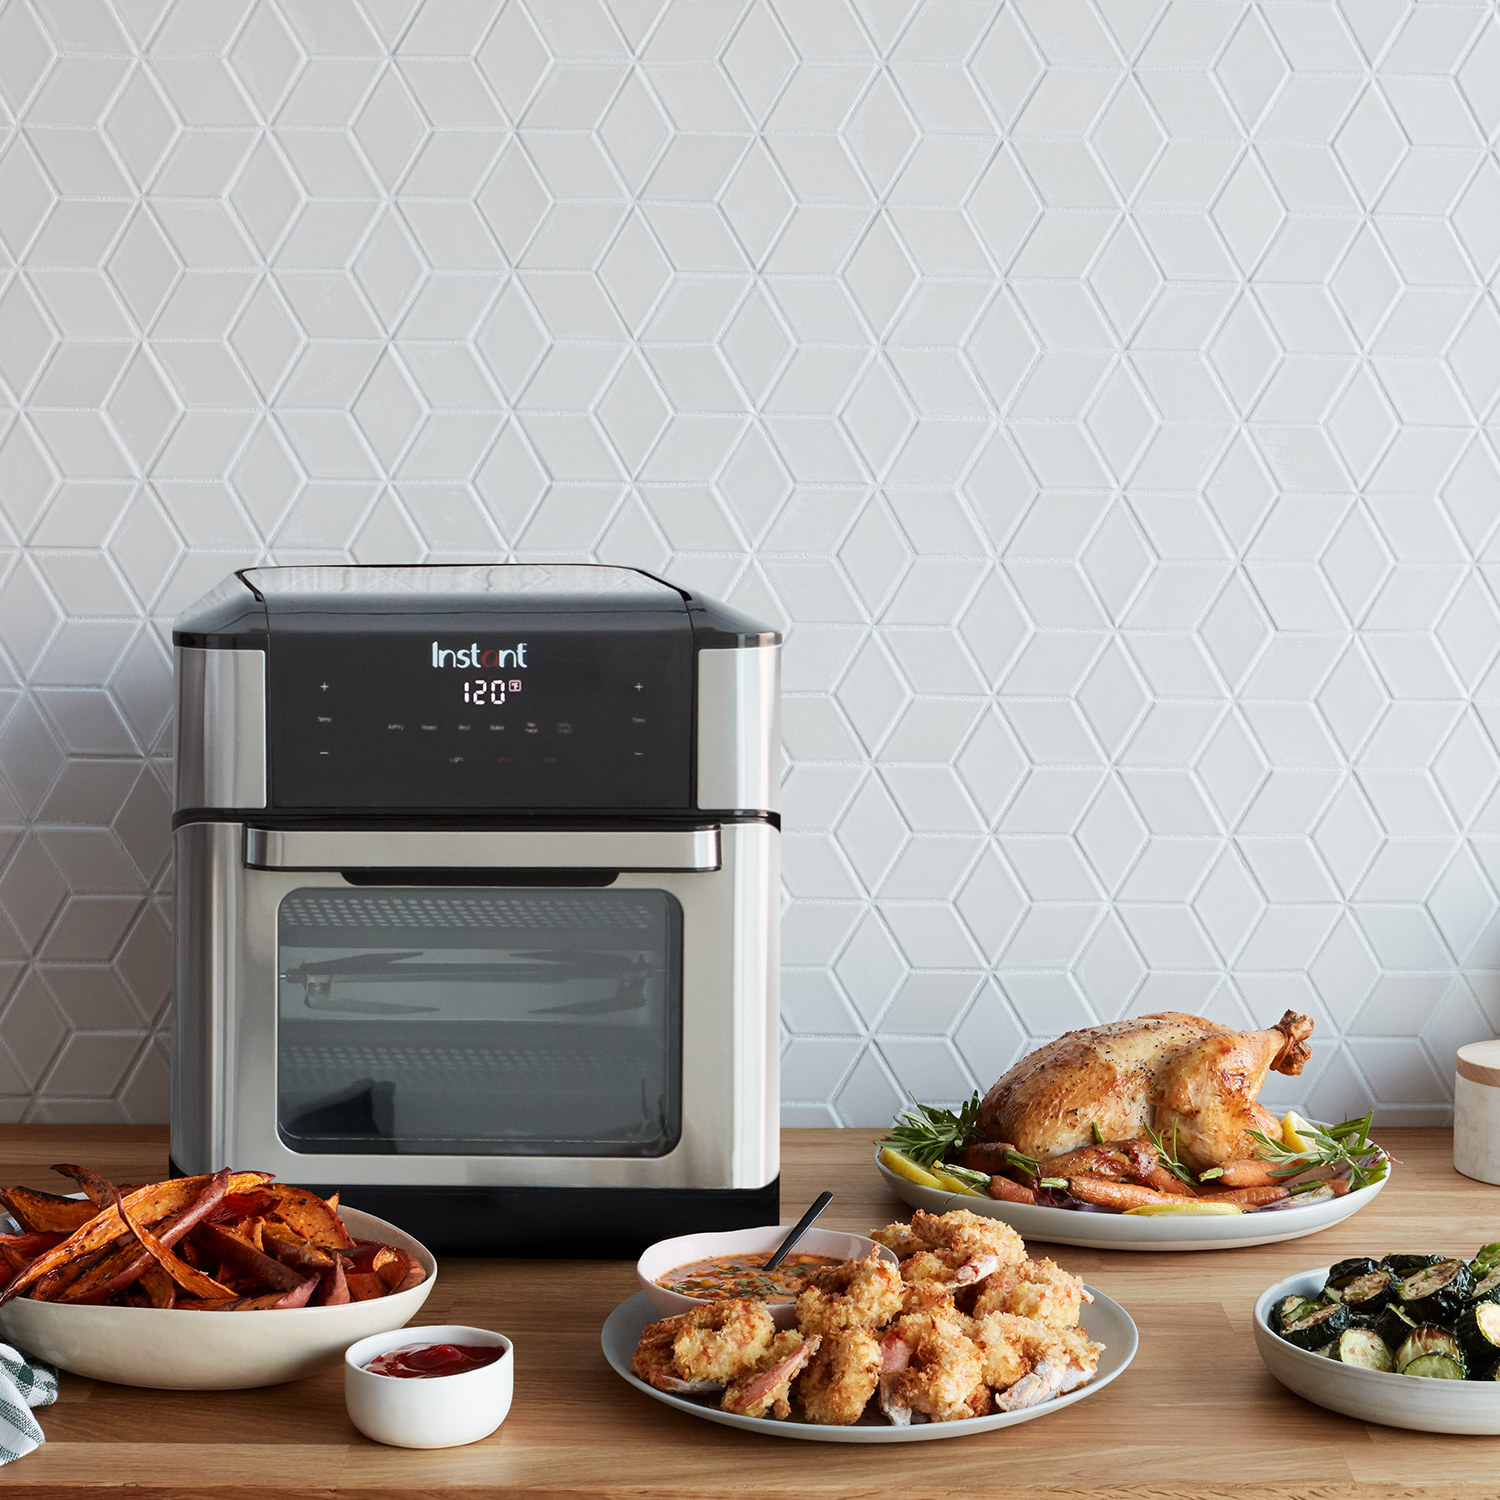 The digital air frying oven